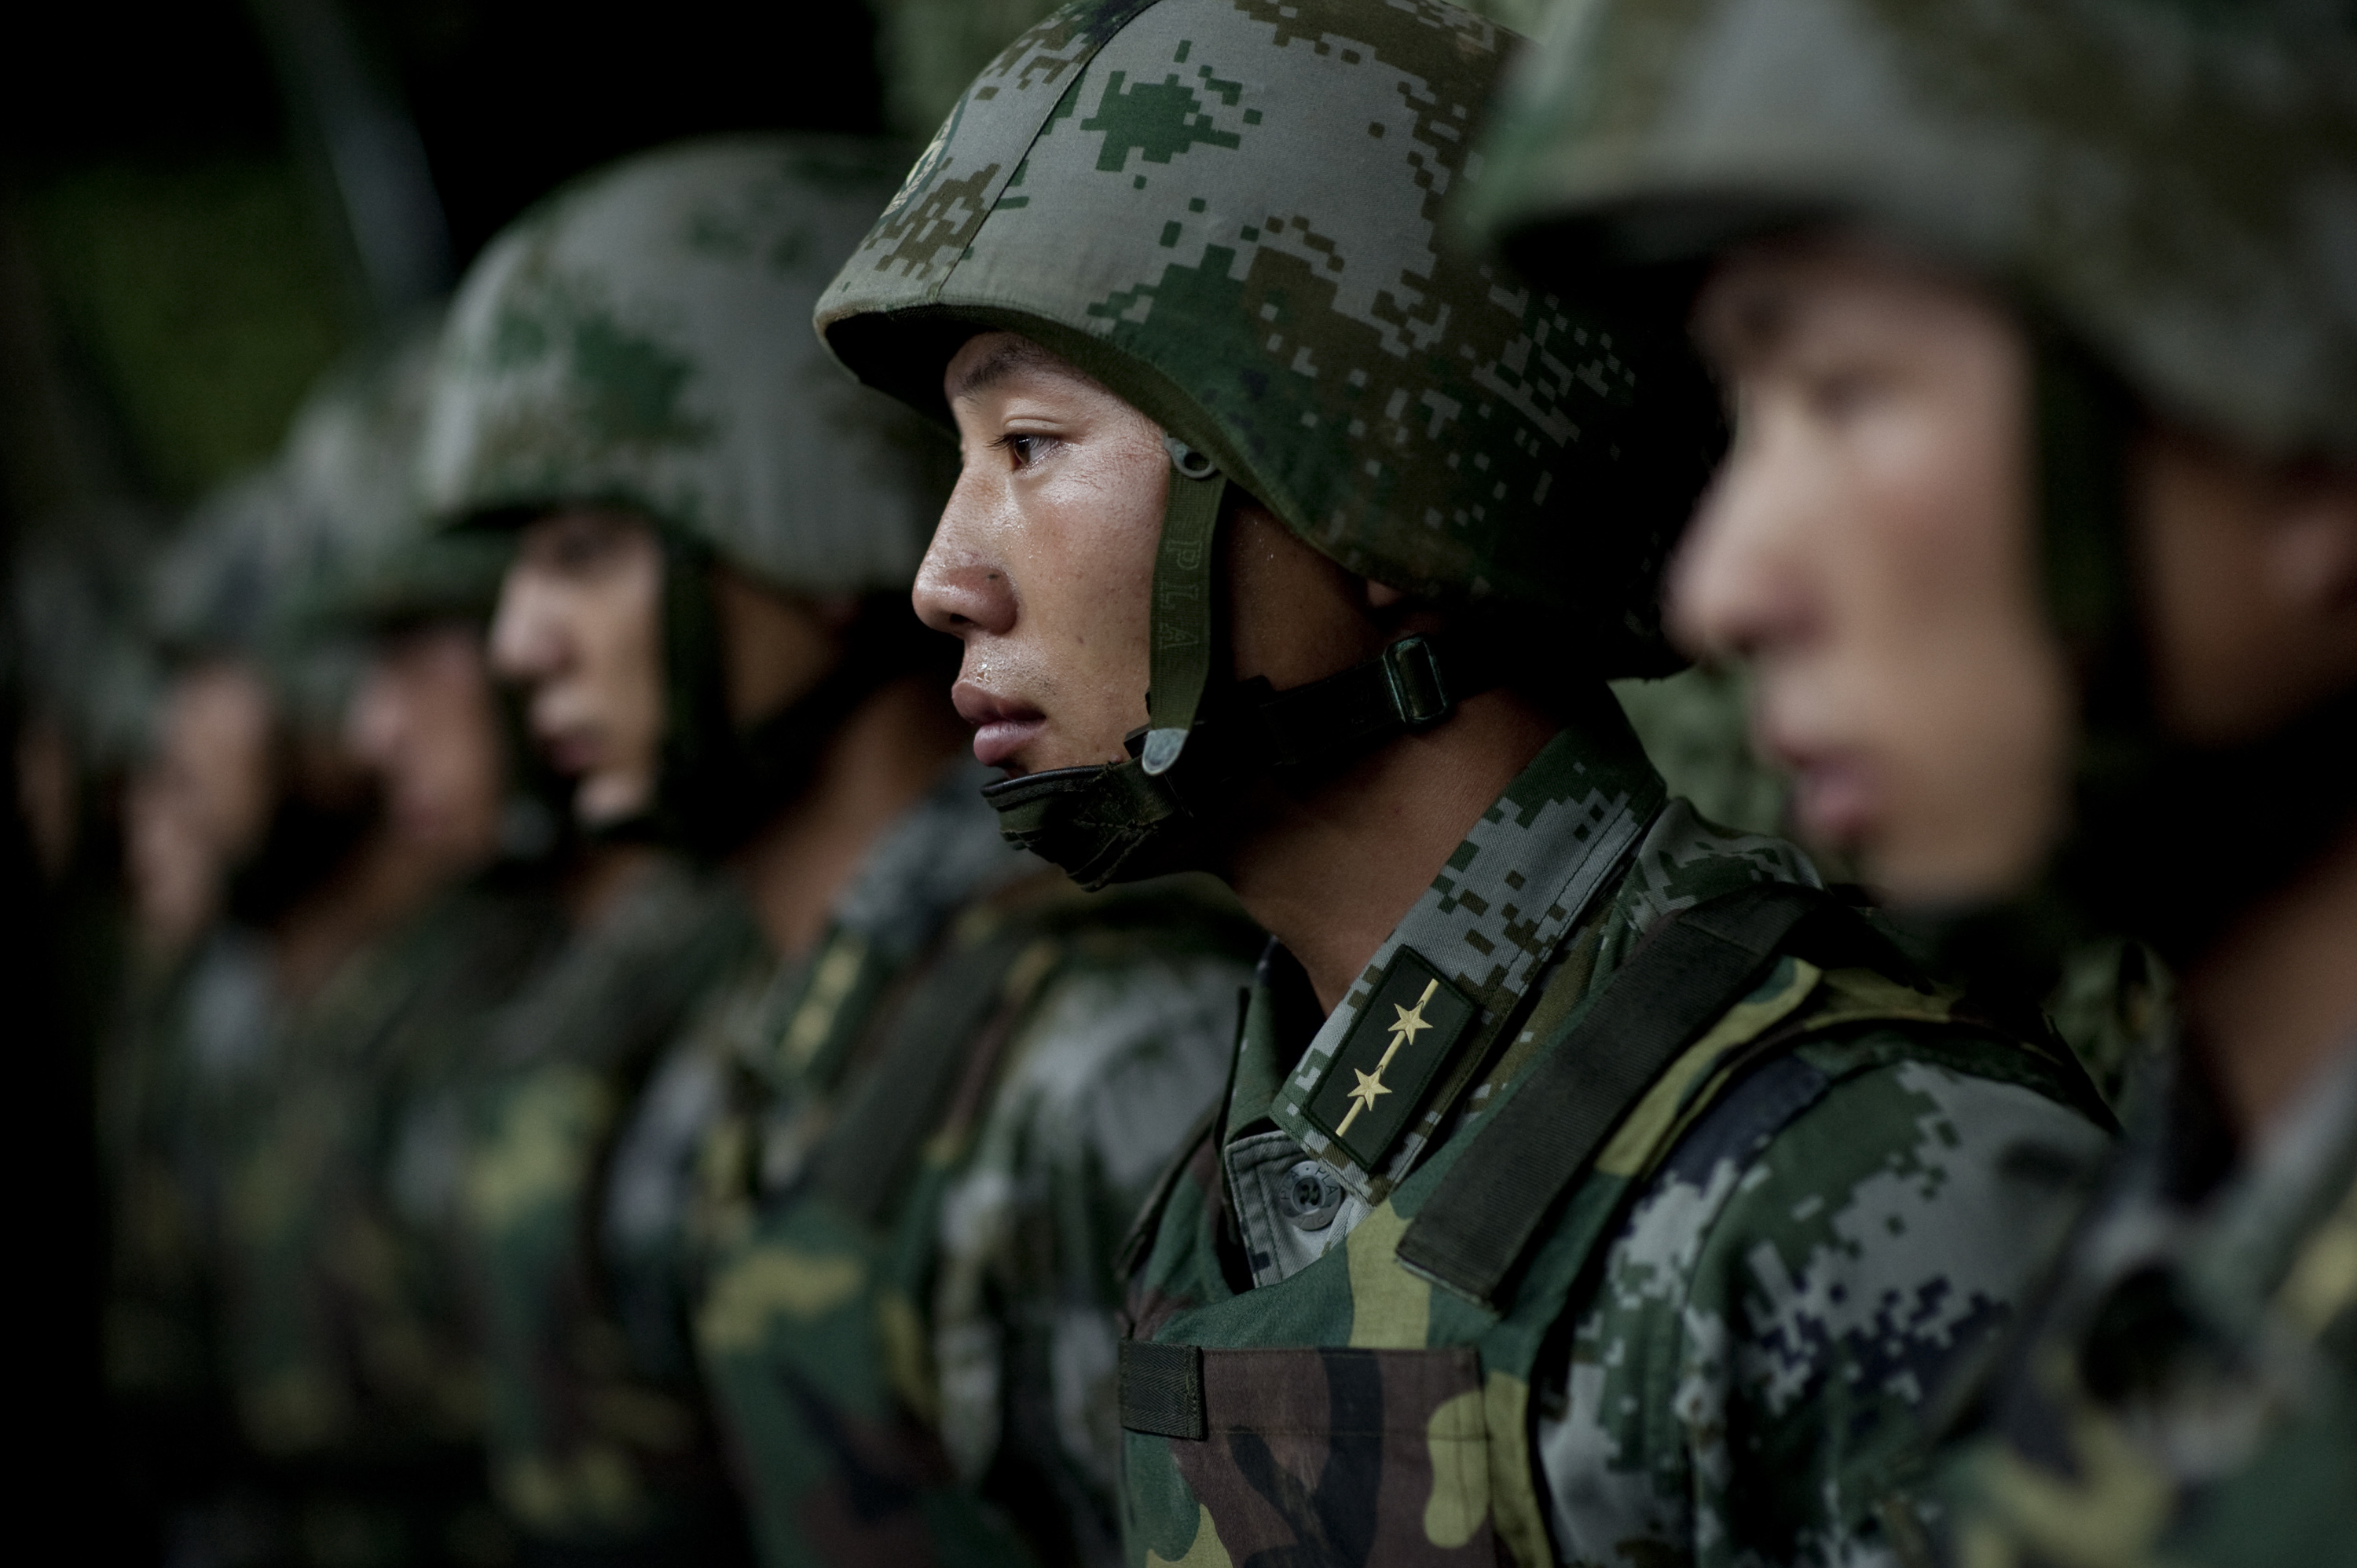 Report: China Sends 150,000 Troops to North Korean Border